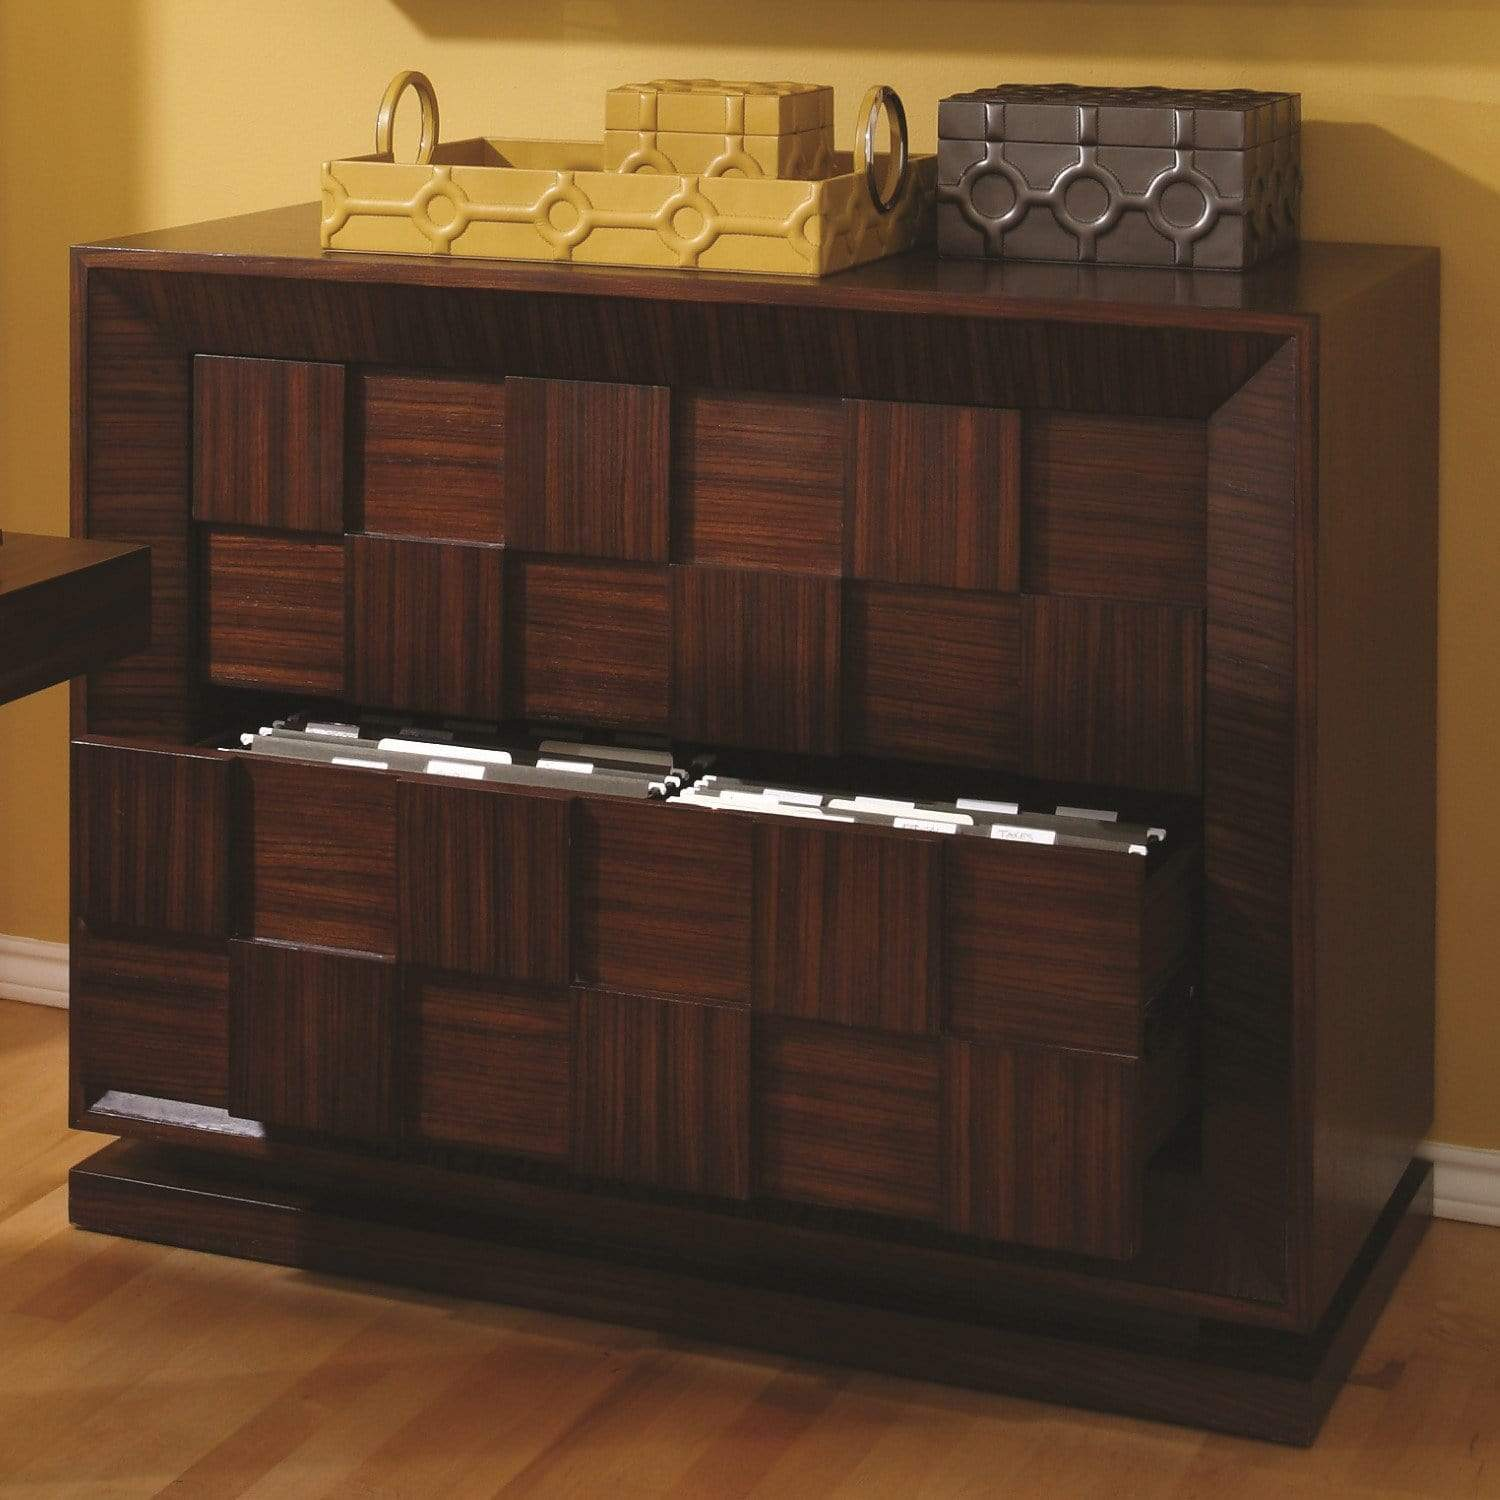 Global Views Global Views Block Lateral File Cabinet 2340